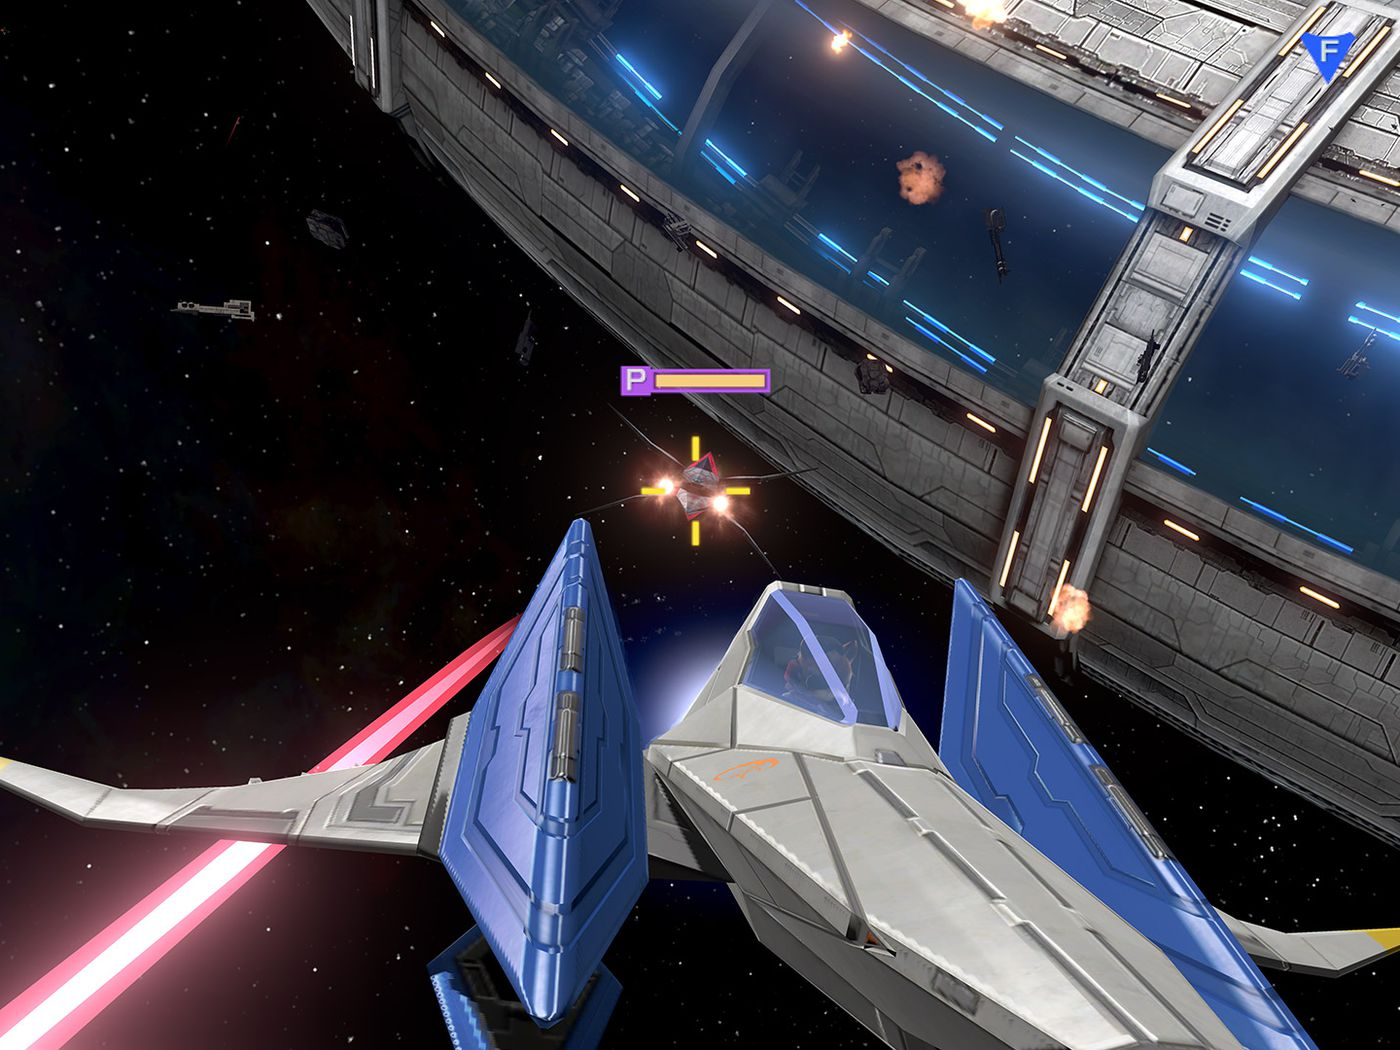 Nintendo and Platinum Games are working together on Star Fox